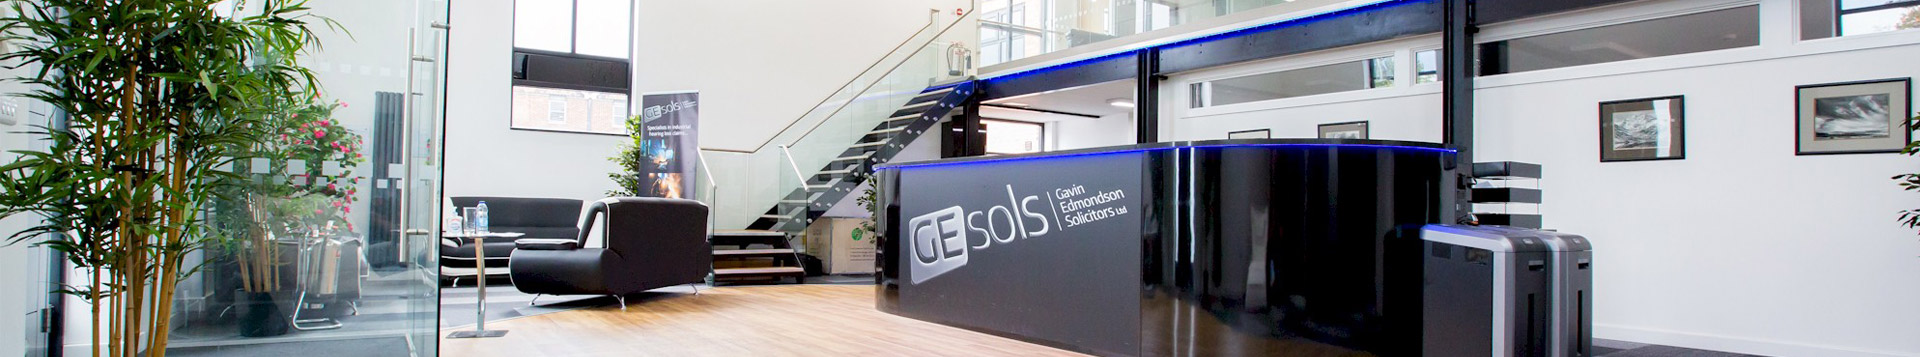 Careers at GEsols